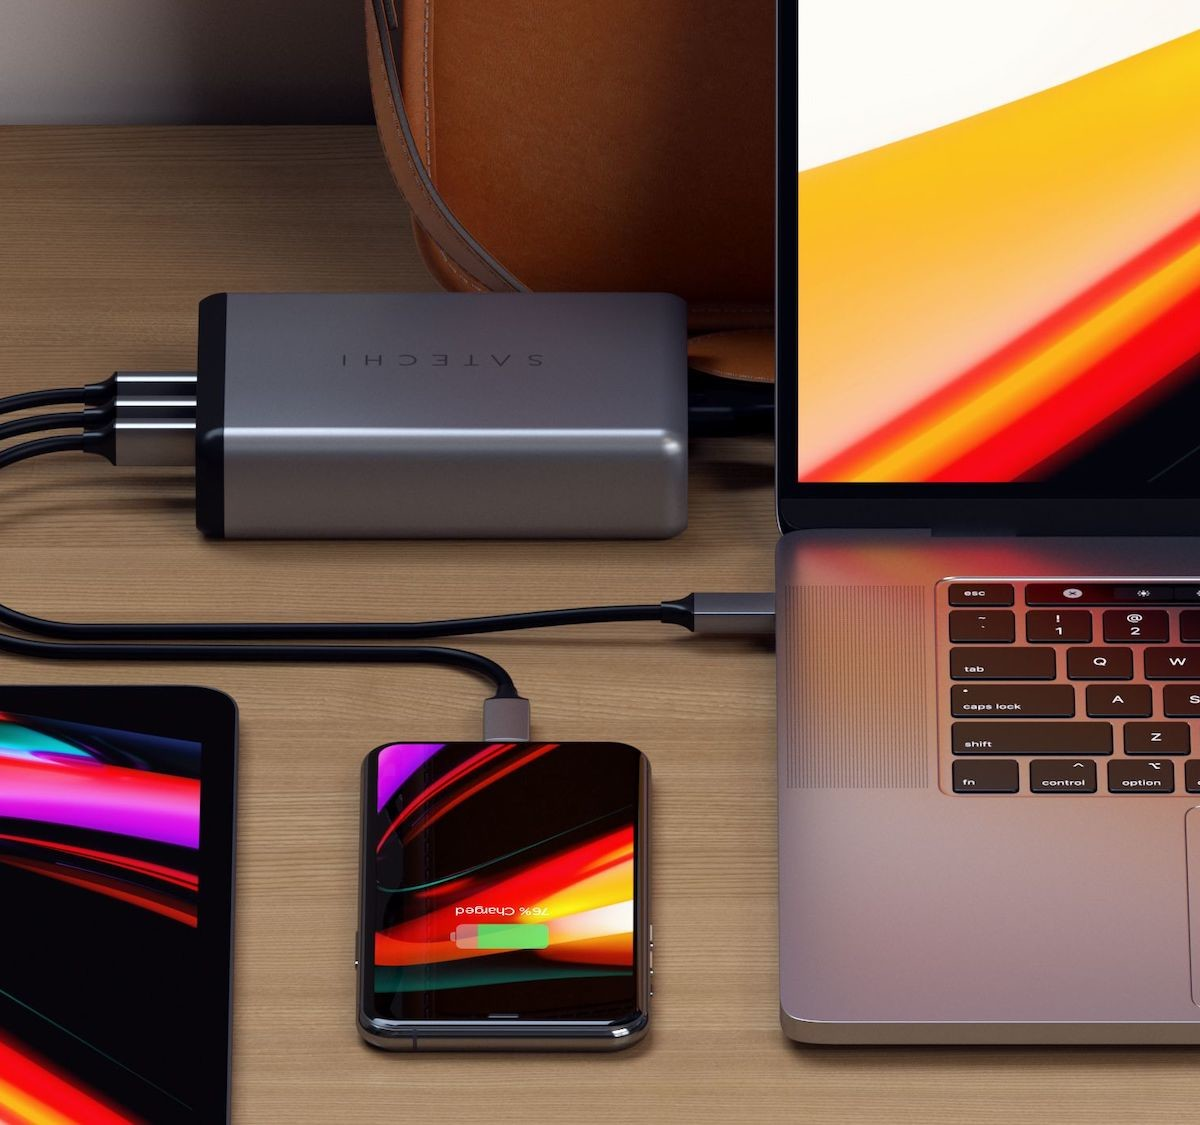 Satechi 108W Pro USB-C PD wireless desktop charger suits many devices